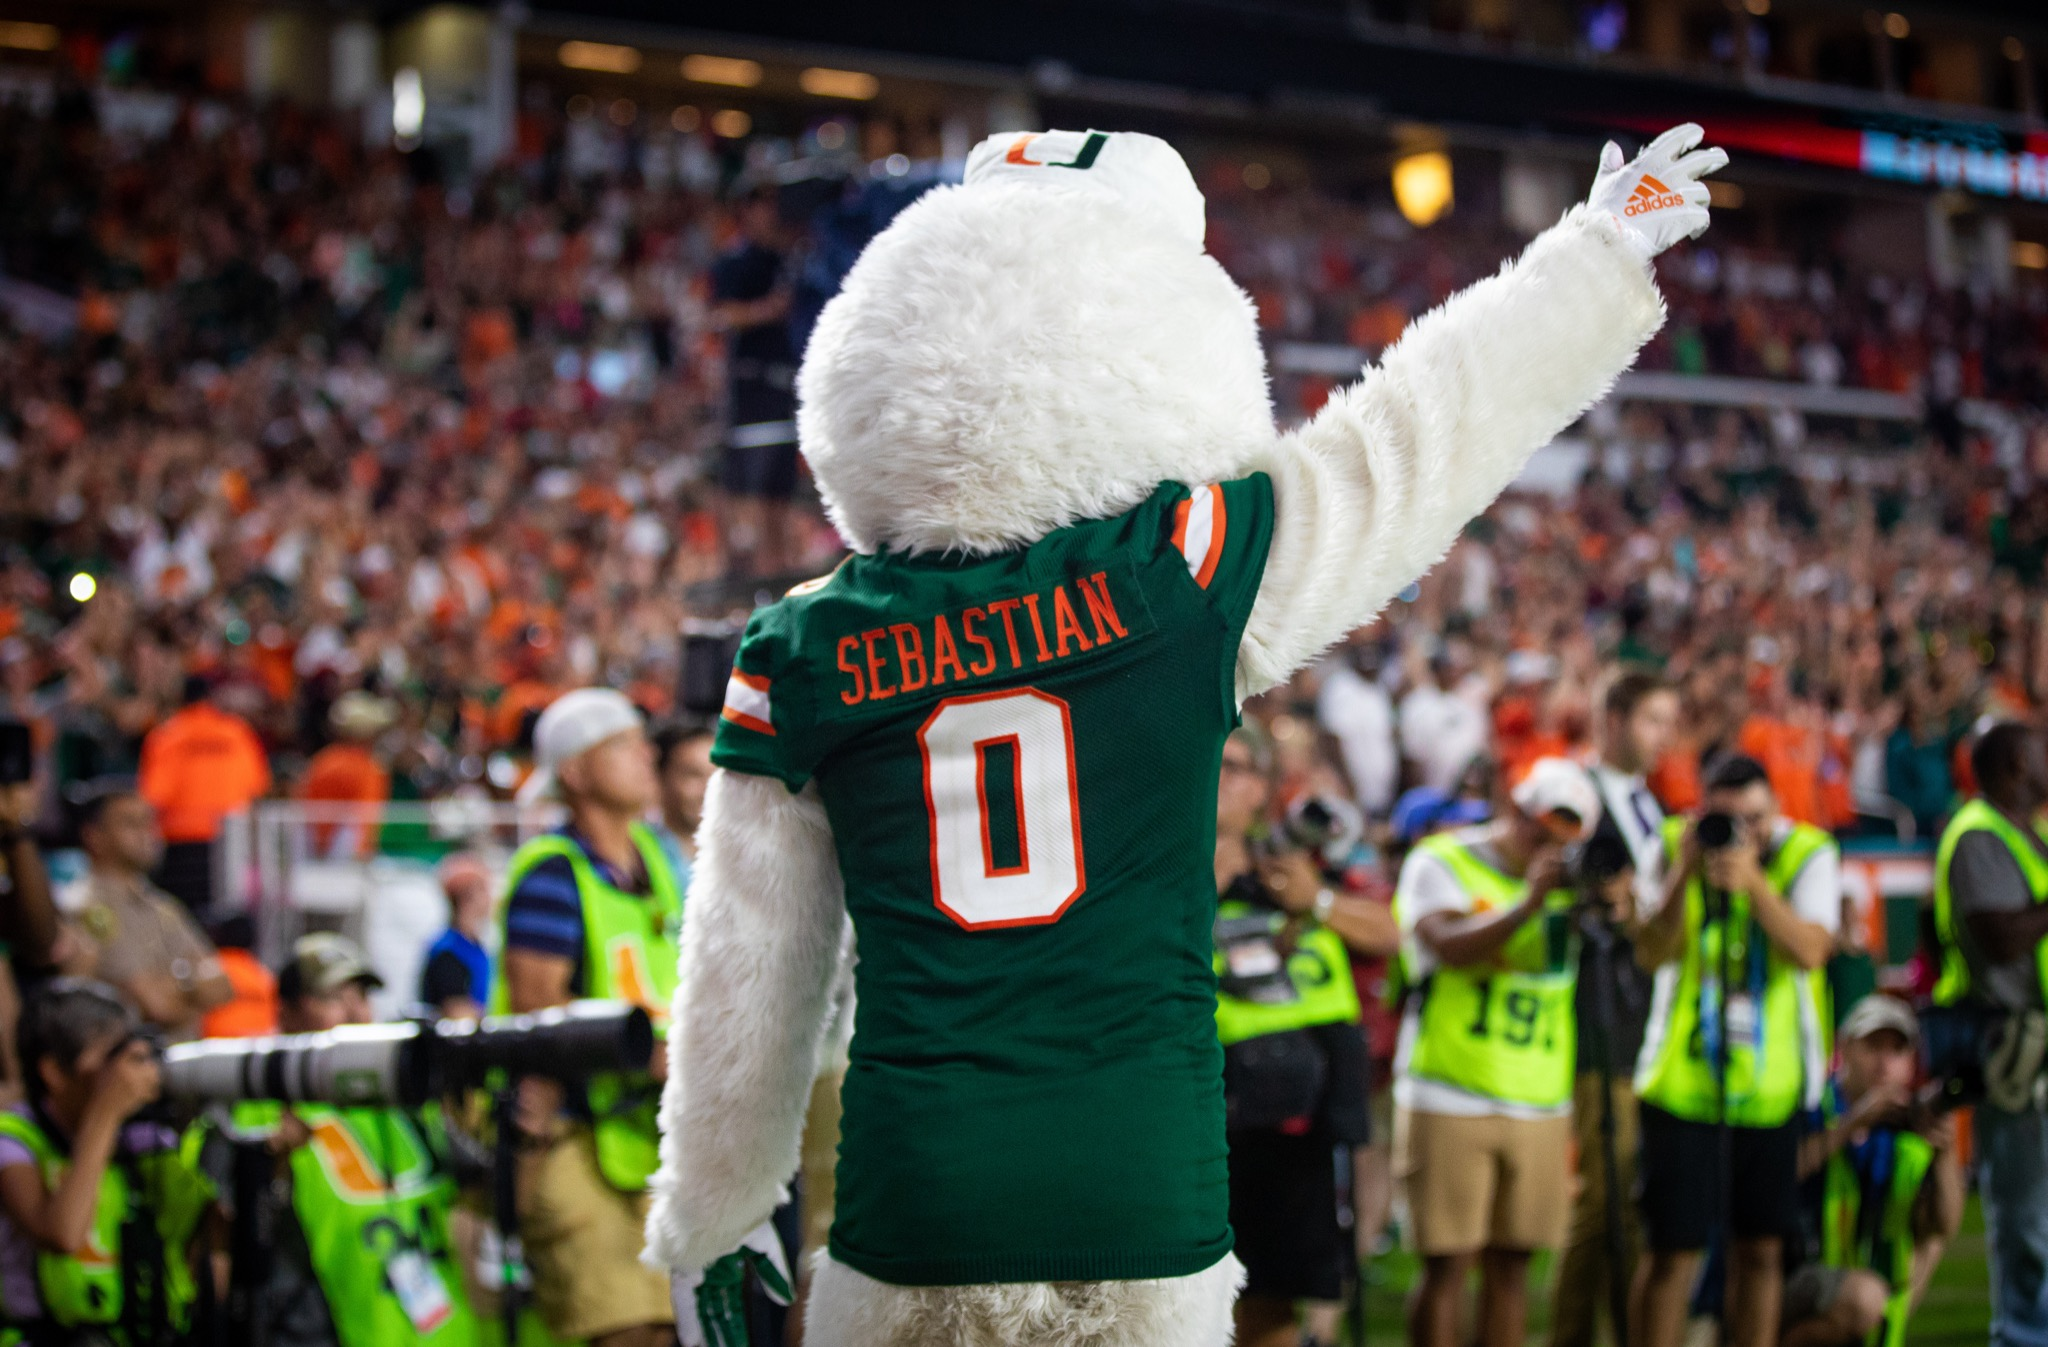 Miami Football: AD Addresses Embarrassing Independence Bowl Loss